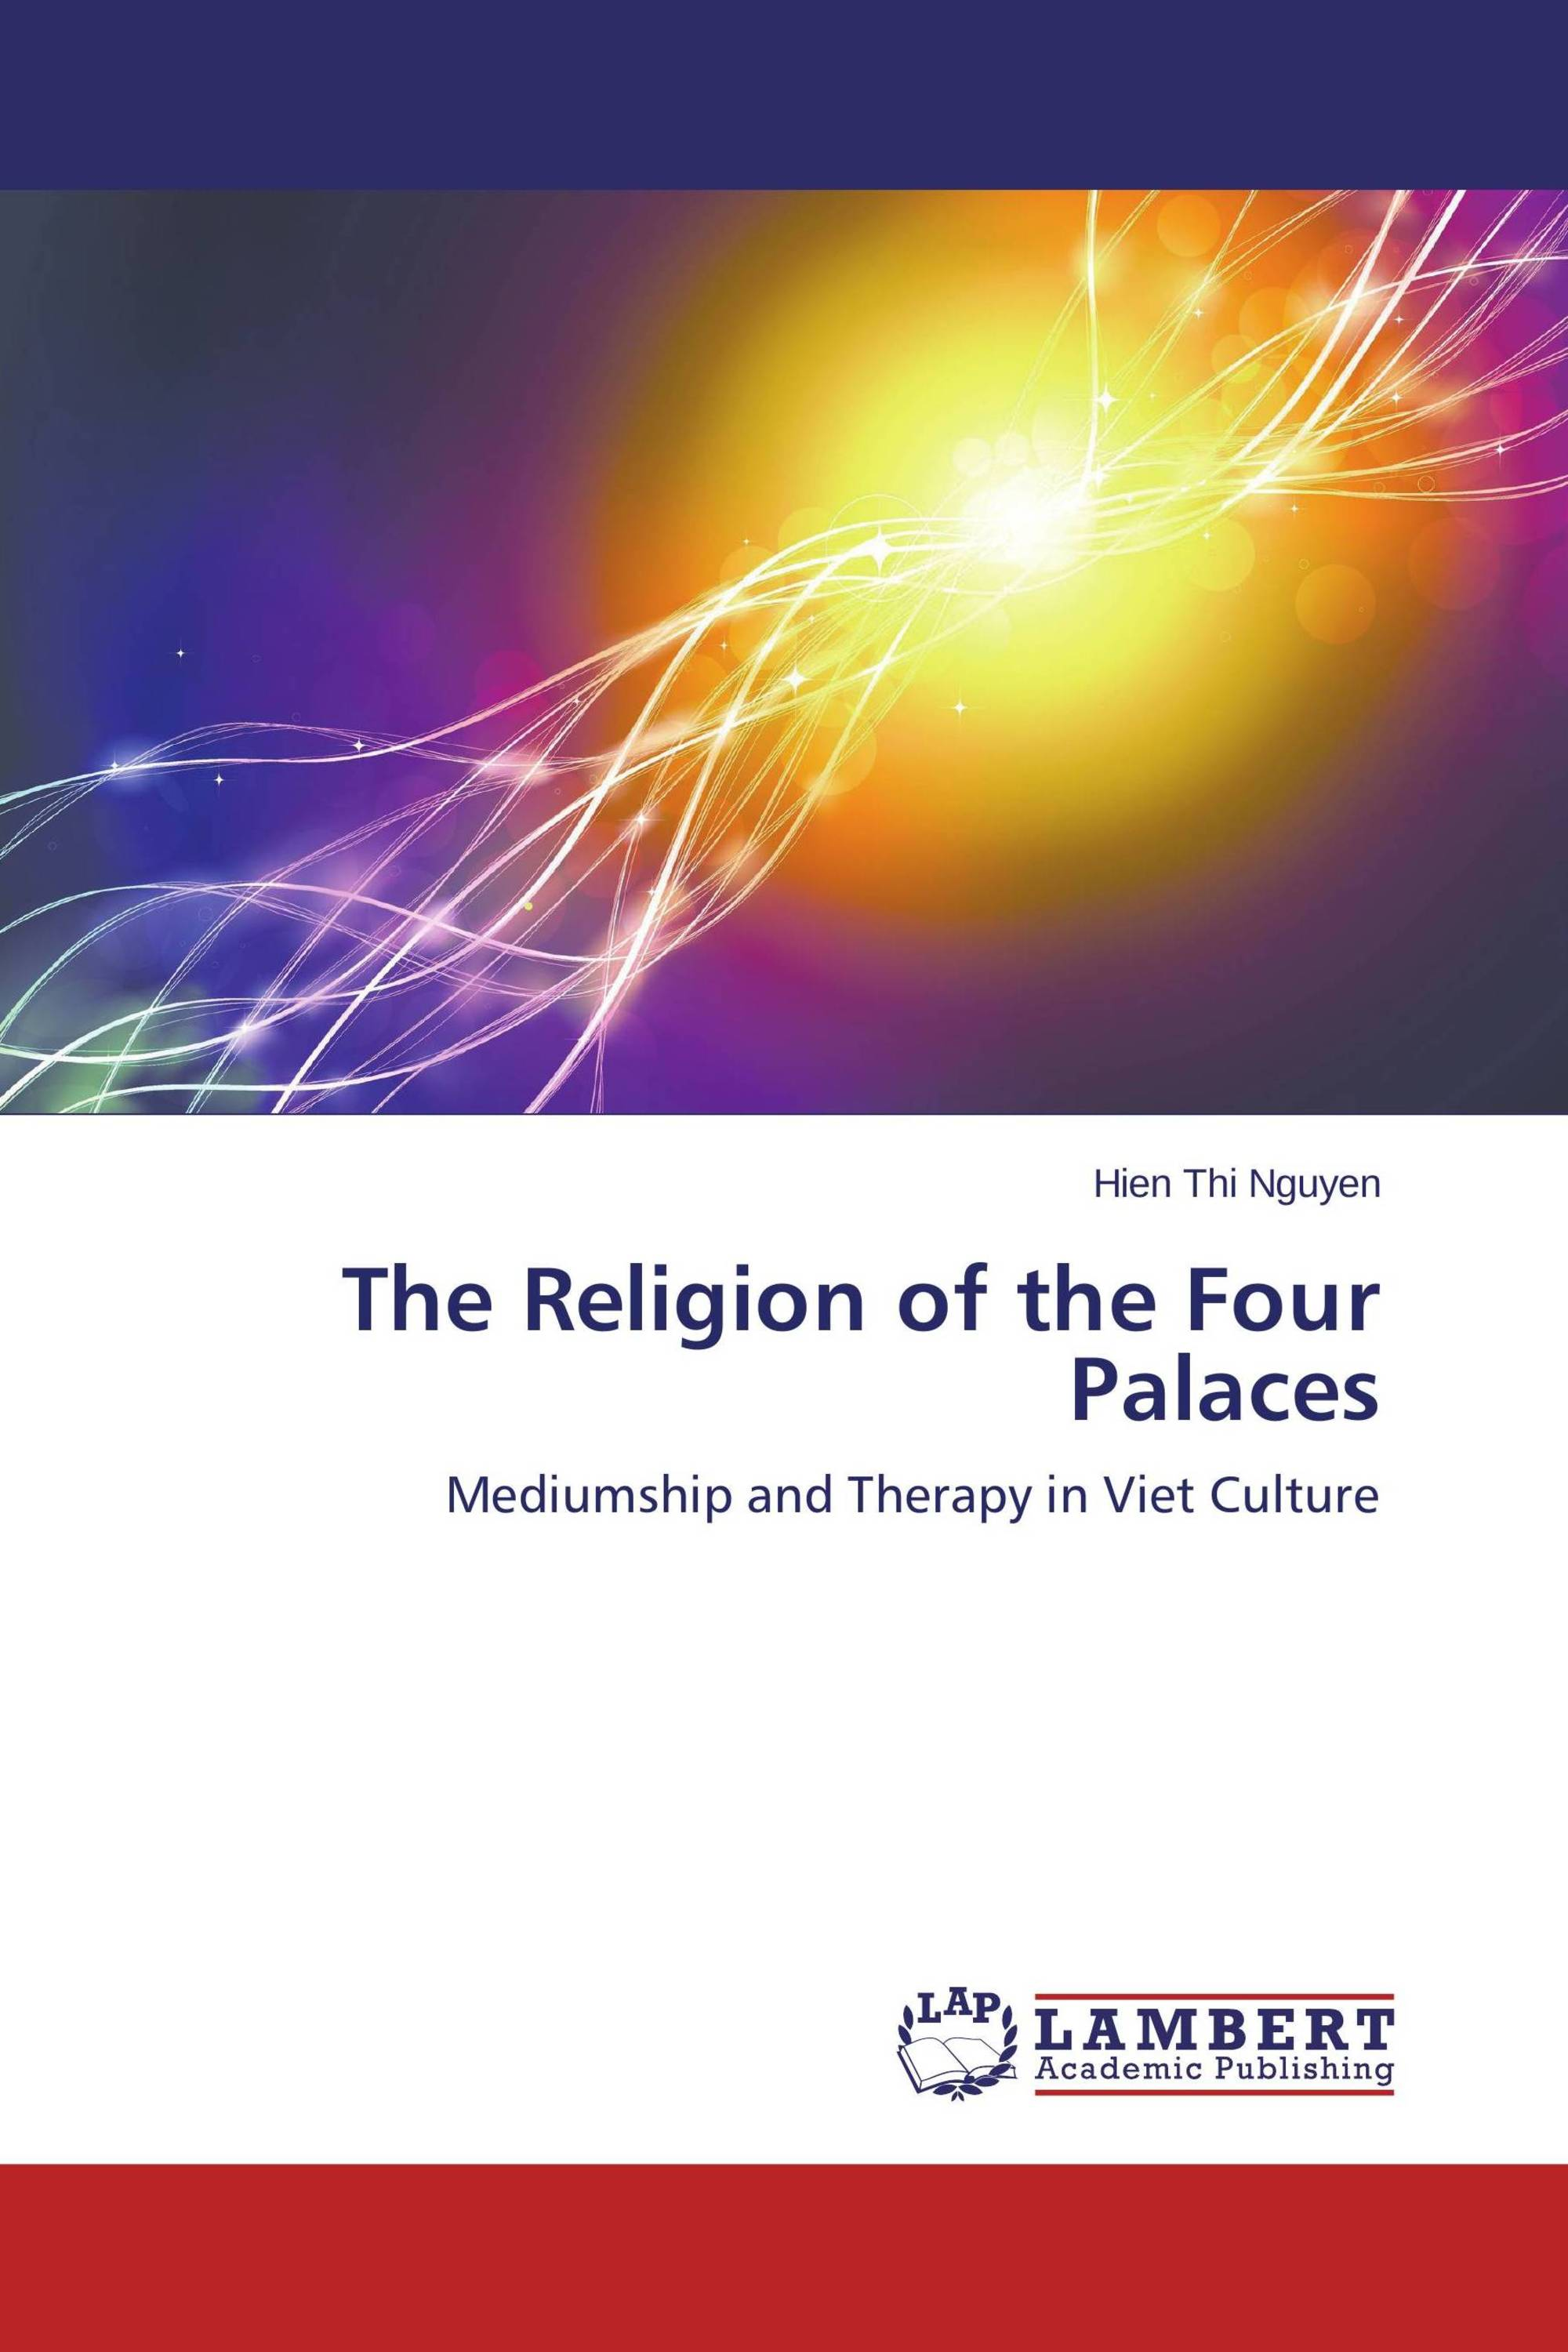 The Religion of the Four Palaces